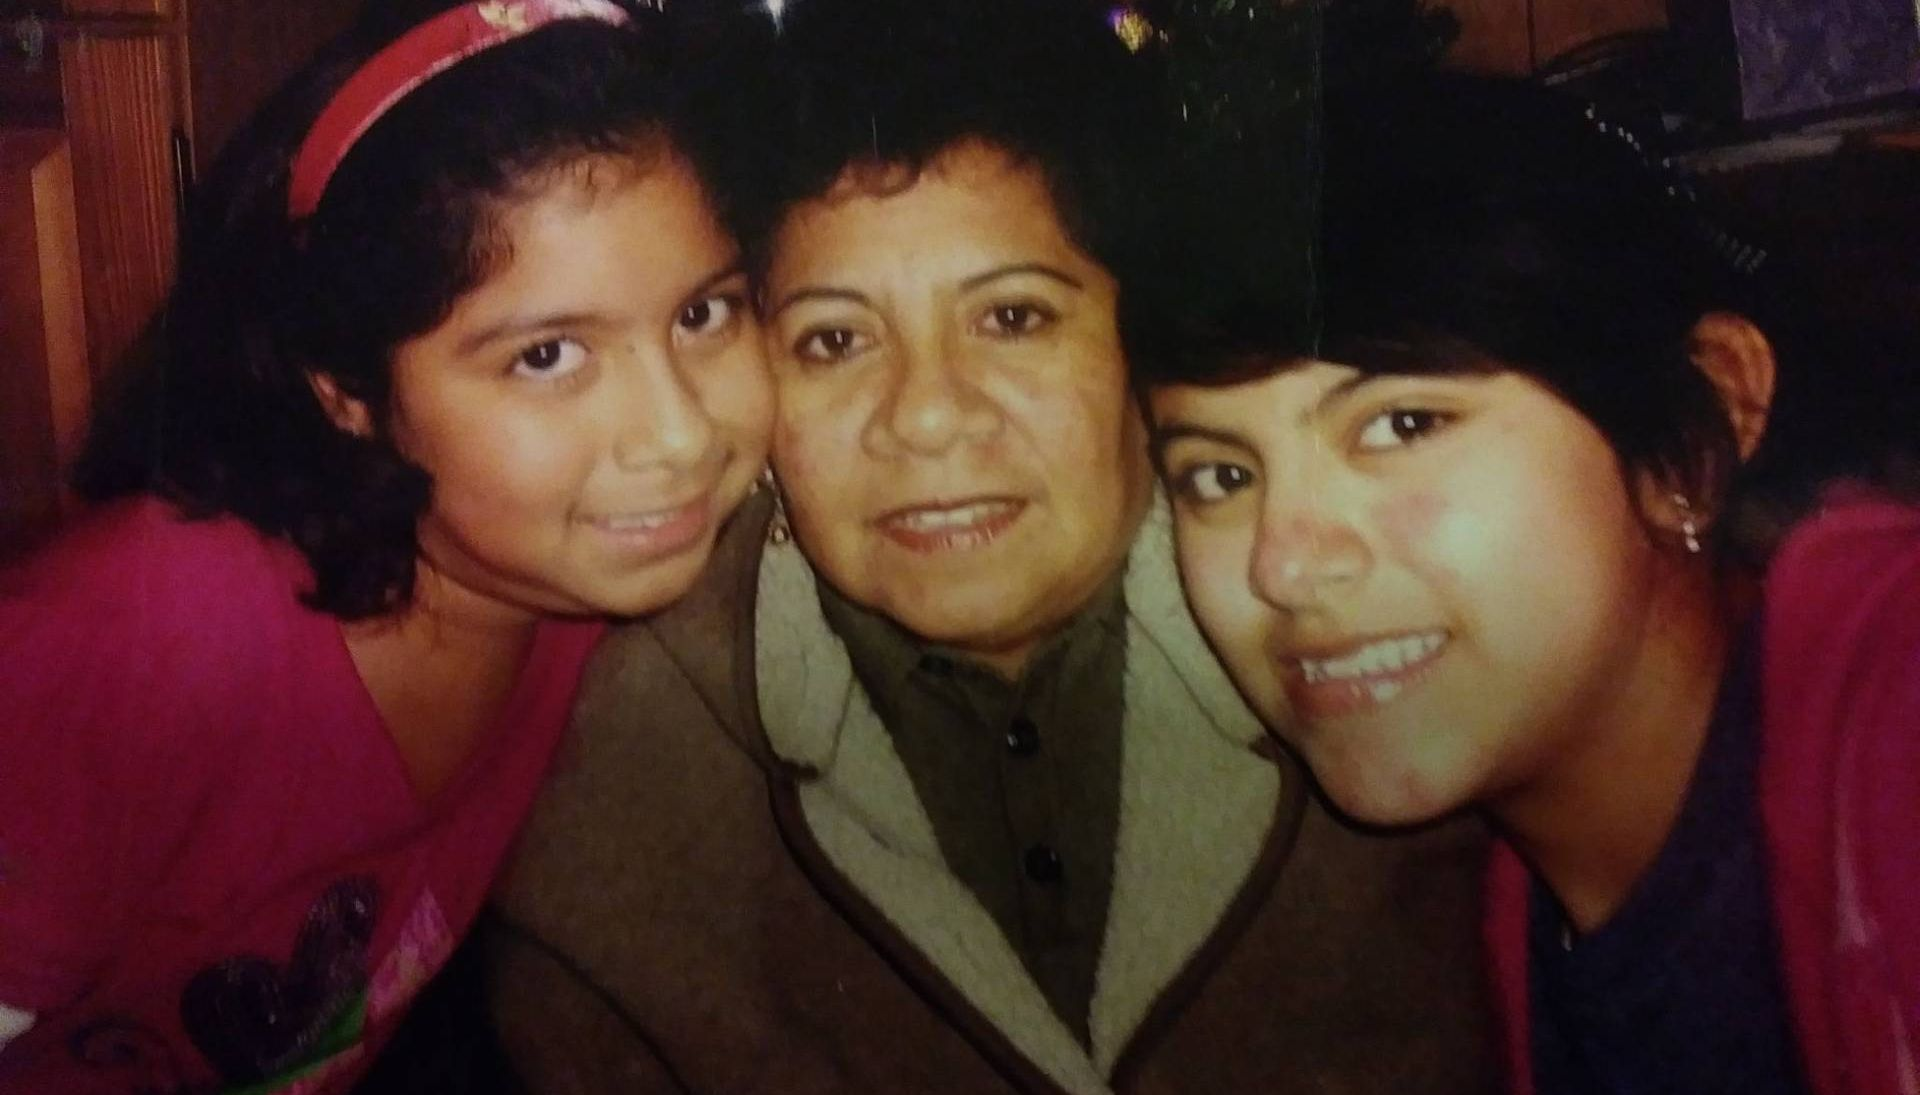 Two younger girls smiling with an older woman wearing a jacket